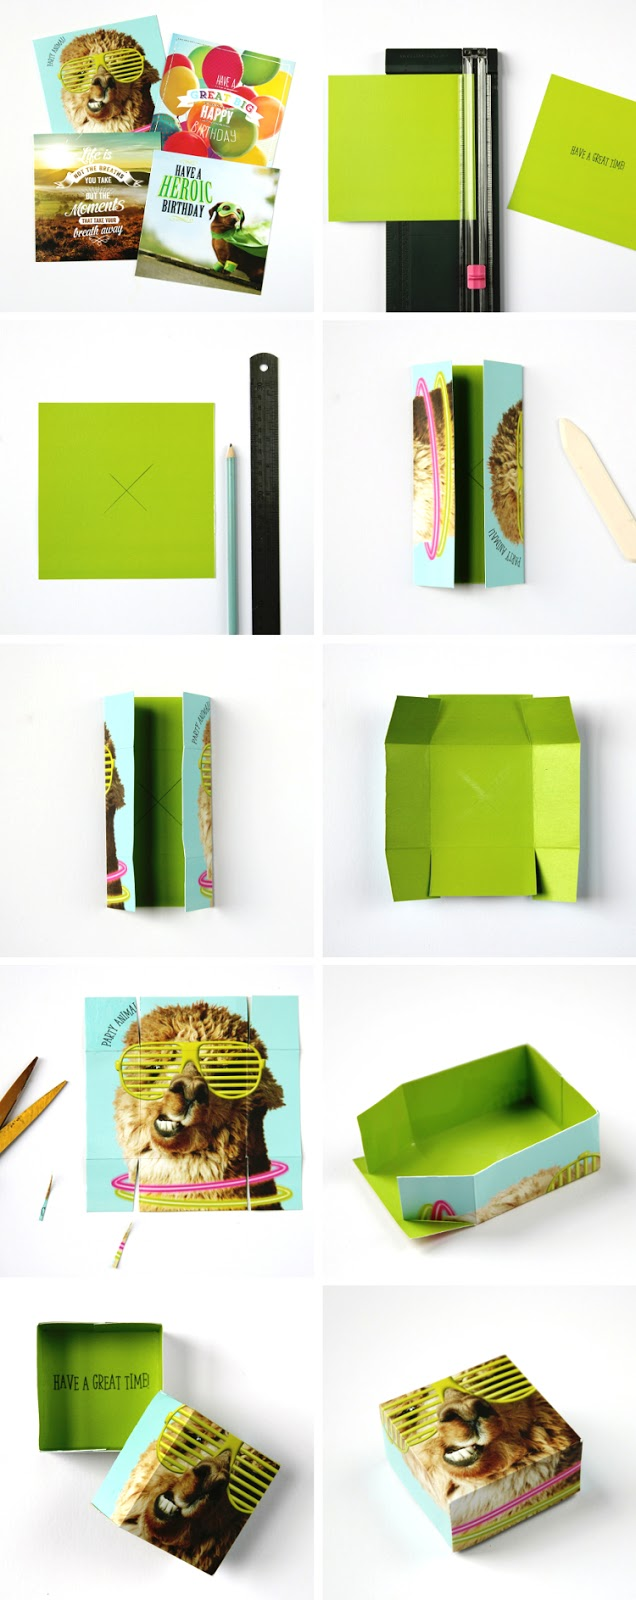 How to make diy gift boxes from recycled old cards